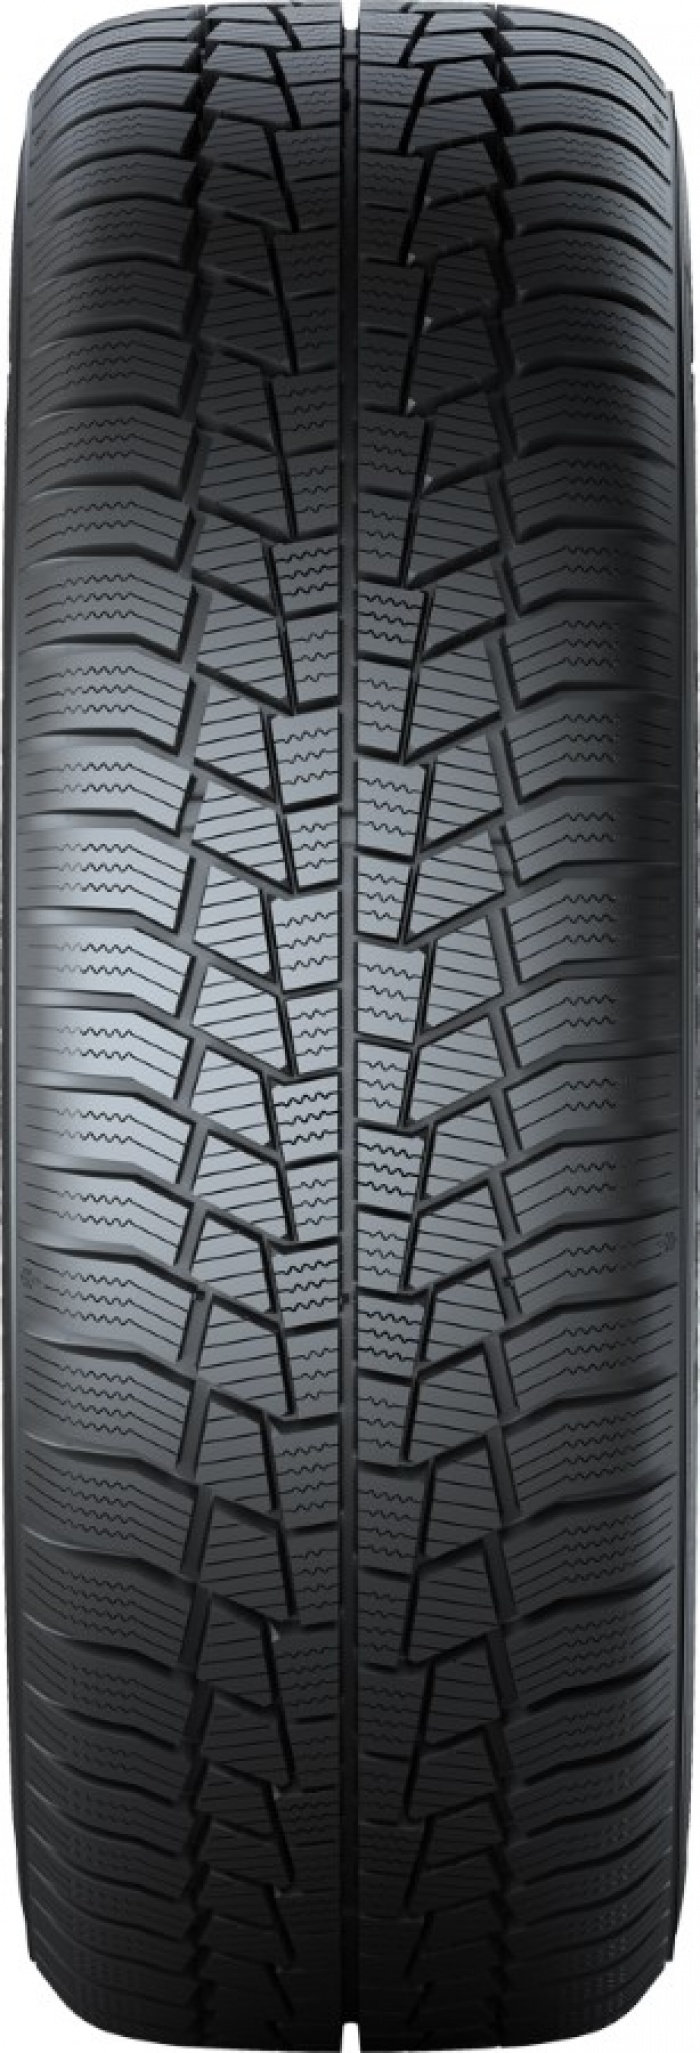 Gislaved Euro Frost 6 215/70 R16 100H  не шип